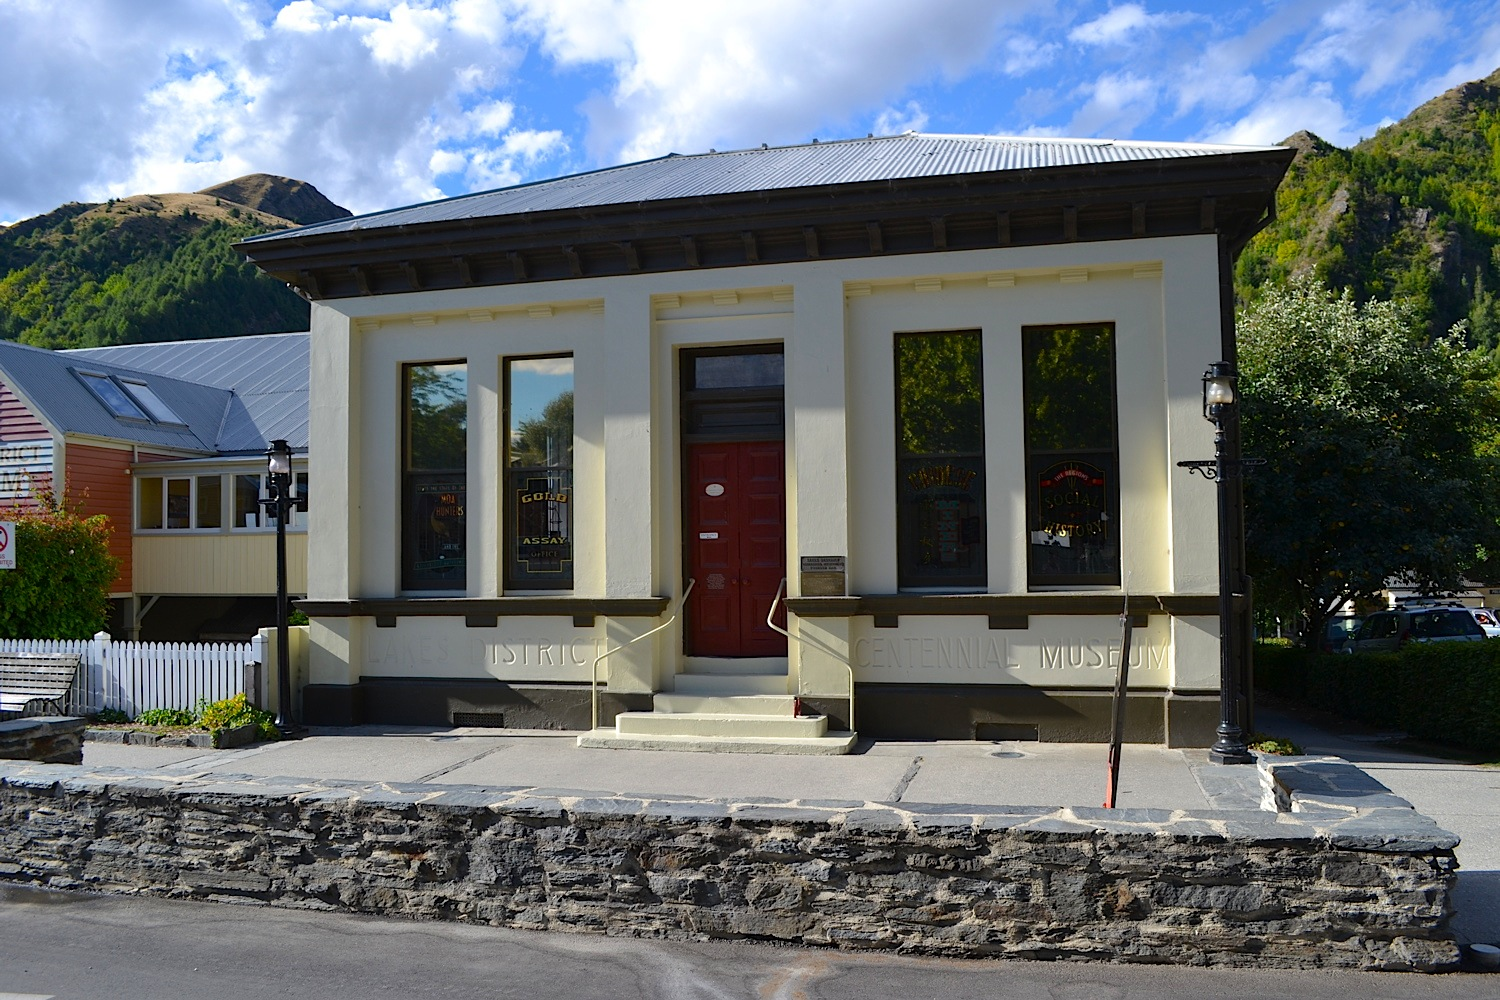 Lakes District Museum, Arrowtown, New Zealand